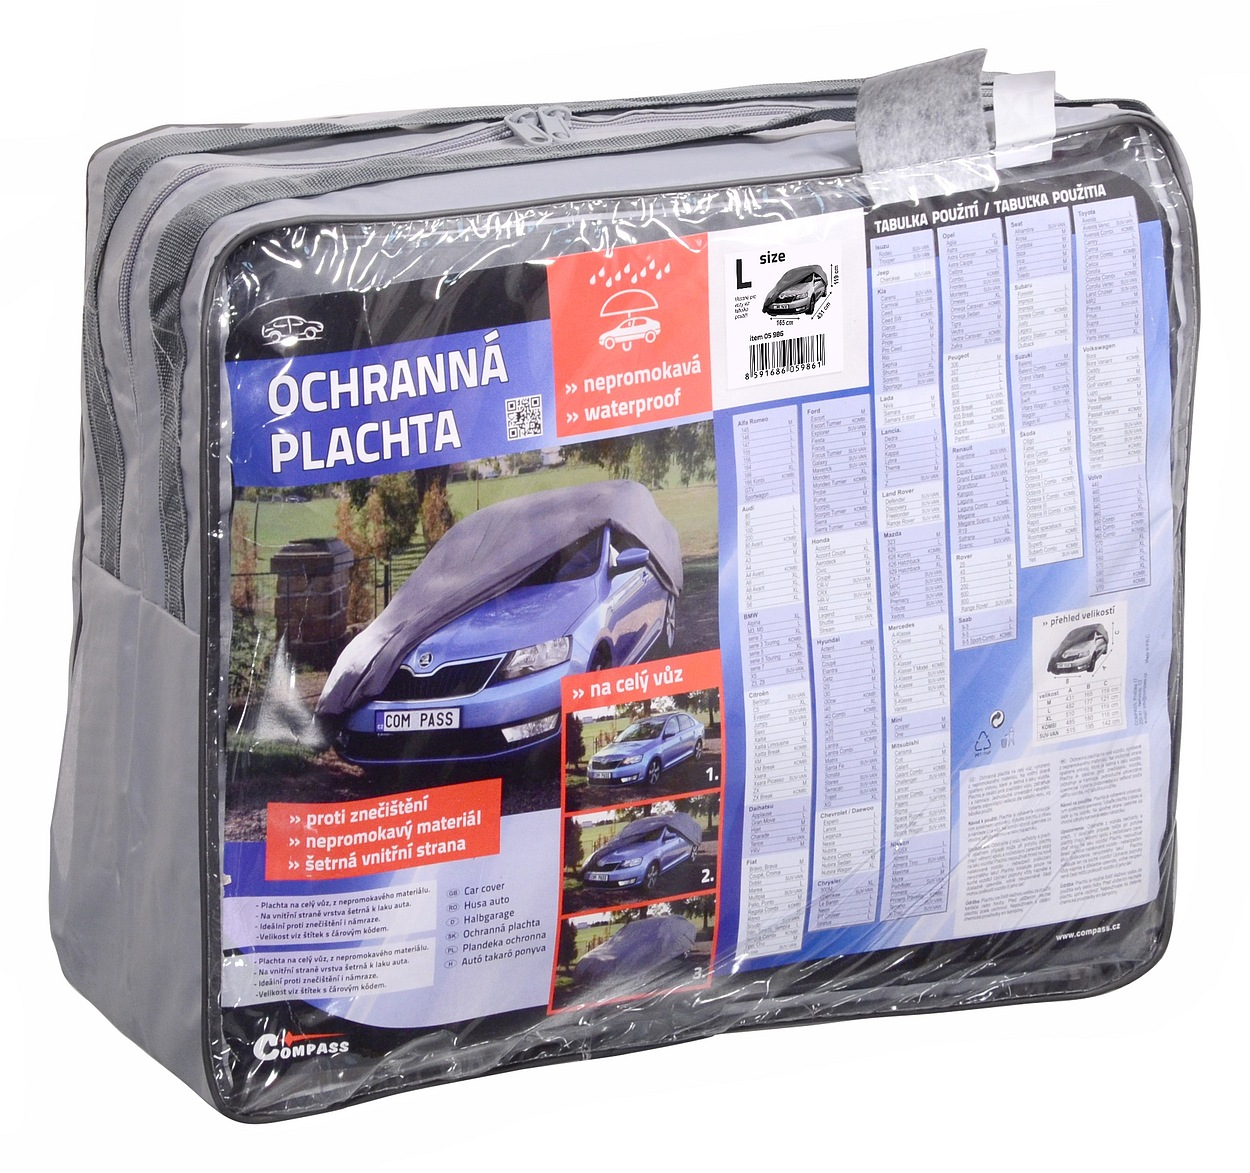 Ochranná plachta FULL L 482x177x121cm 100% WATERPROOF